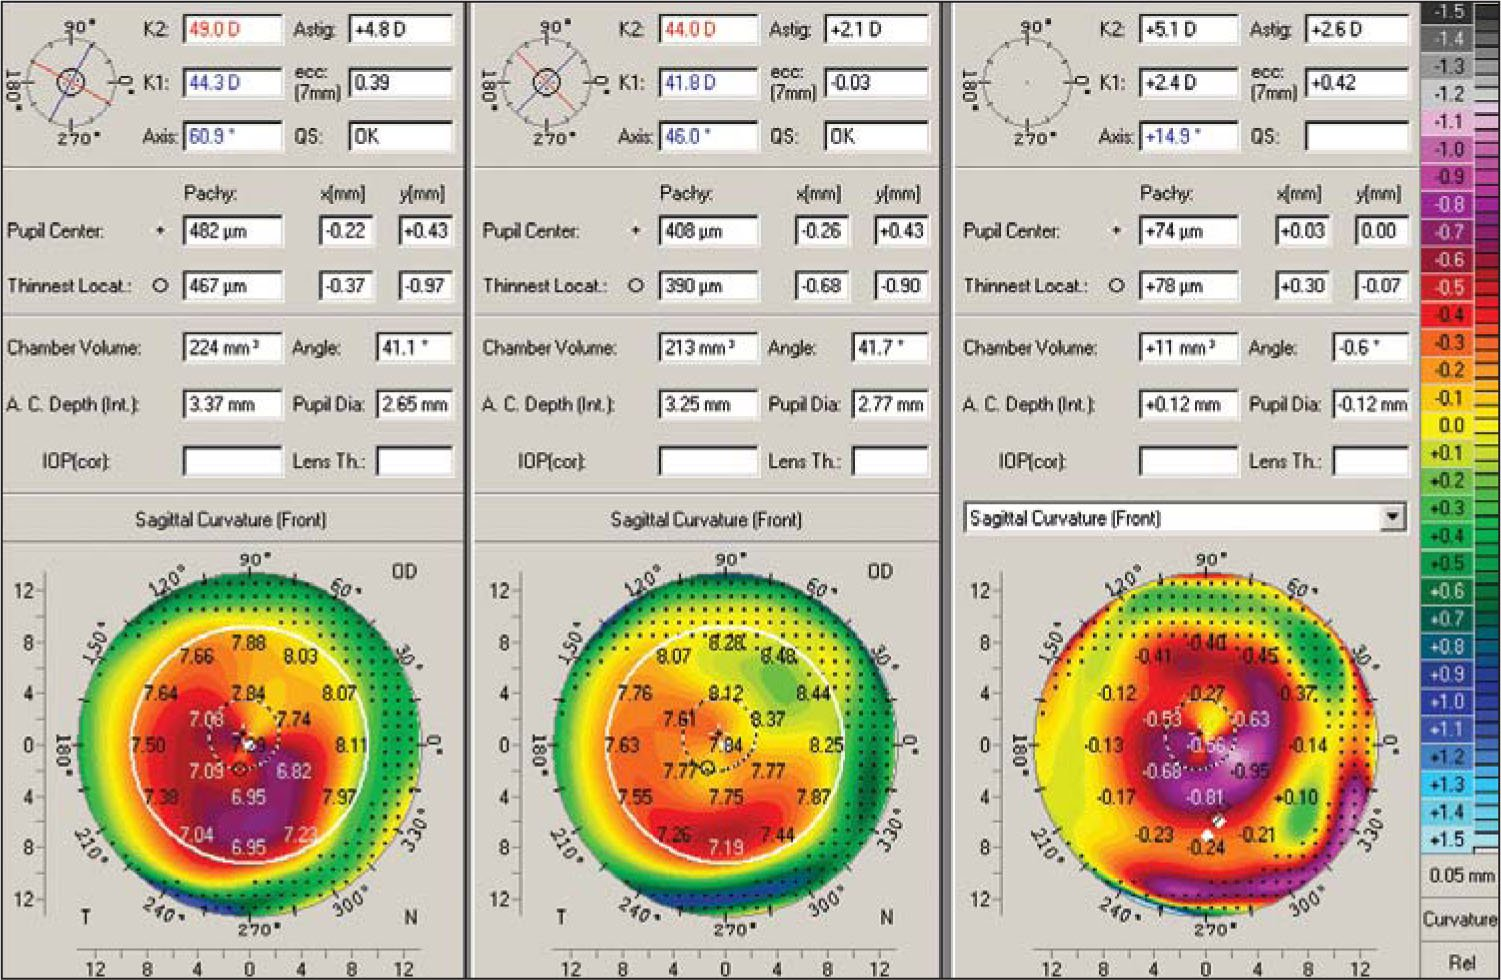 Representative Corneal Topographies from Sequential Pentacam Examinations Are Shown in a 29-Year-Old Patient from the Simultaneous Group (same-Day, Simultaneous Topography-Guided Photorefractive Keratectomy [PRK] and Corneal Collagen Cross-Linking [CXL]). The Difference Map (right Topography) Is Shown for the Changes from Preoperative (left Topography) to 2 Years Postoperative (middle Topography). The Pentacam Data Demonstrate the Change of Keratometric Data from 49 and 44.3 @ 60.9° to 44 and 41.8 @ 46°. Changes in Visual Acuity and Refraction Data from Pre- to Postoperative Were: Uncorrected Visual Acuity 20/100 to 20/25 and Best Spectacle-Corrected Visual Acuity (bscva) 20/30 with −2.75 −3.50 @ 65 to Bscva 20/20 with +0.50 −1.00 @ 35 at 2 Years. The Difference Map Illustrates the Surface Change Achieved by the Simultaneous Topography-Guided PRK and CXL Technique, Which Resembles a Combined Myopic PRK over the Cone Apex and an Asymmetric Hyperopic PRK in the Periphery.